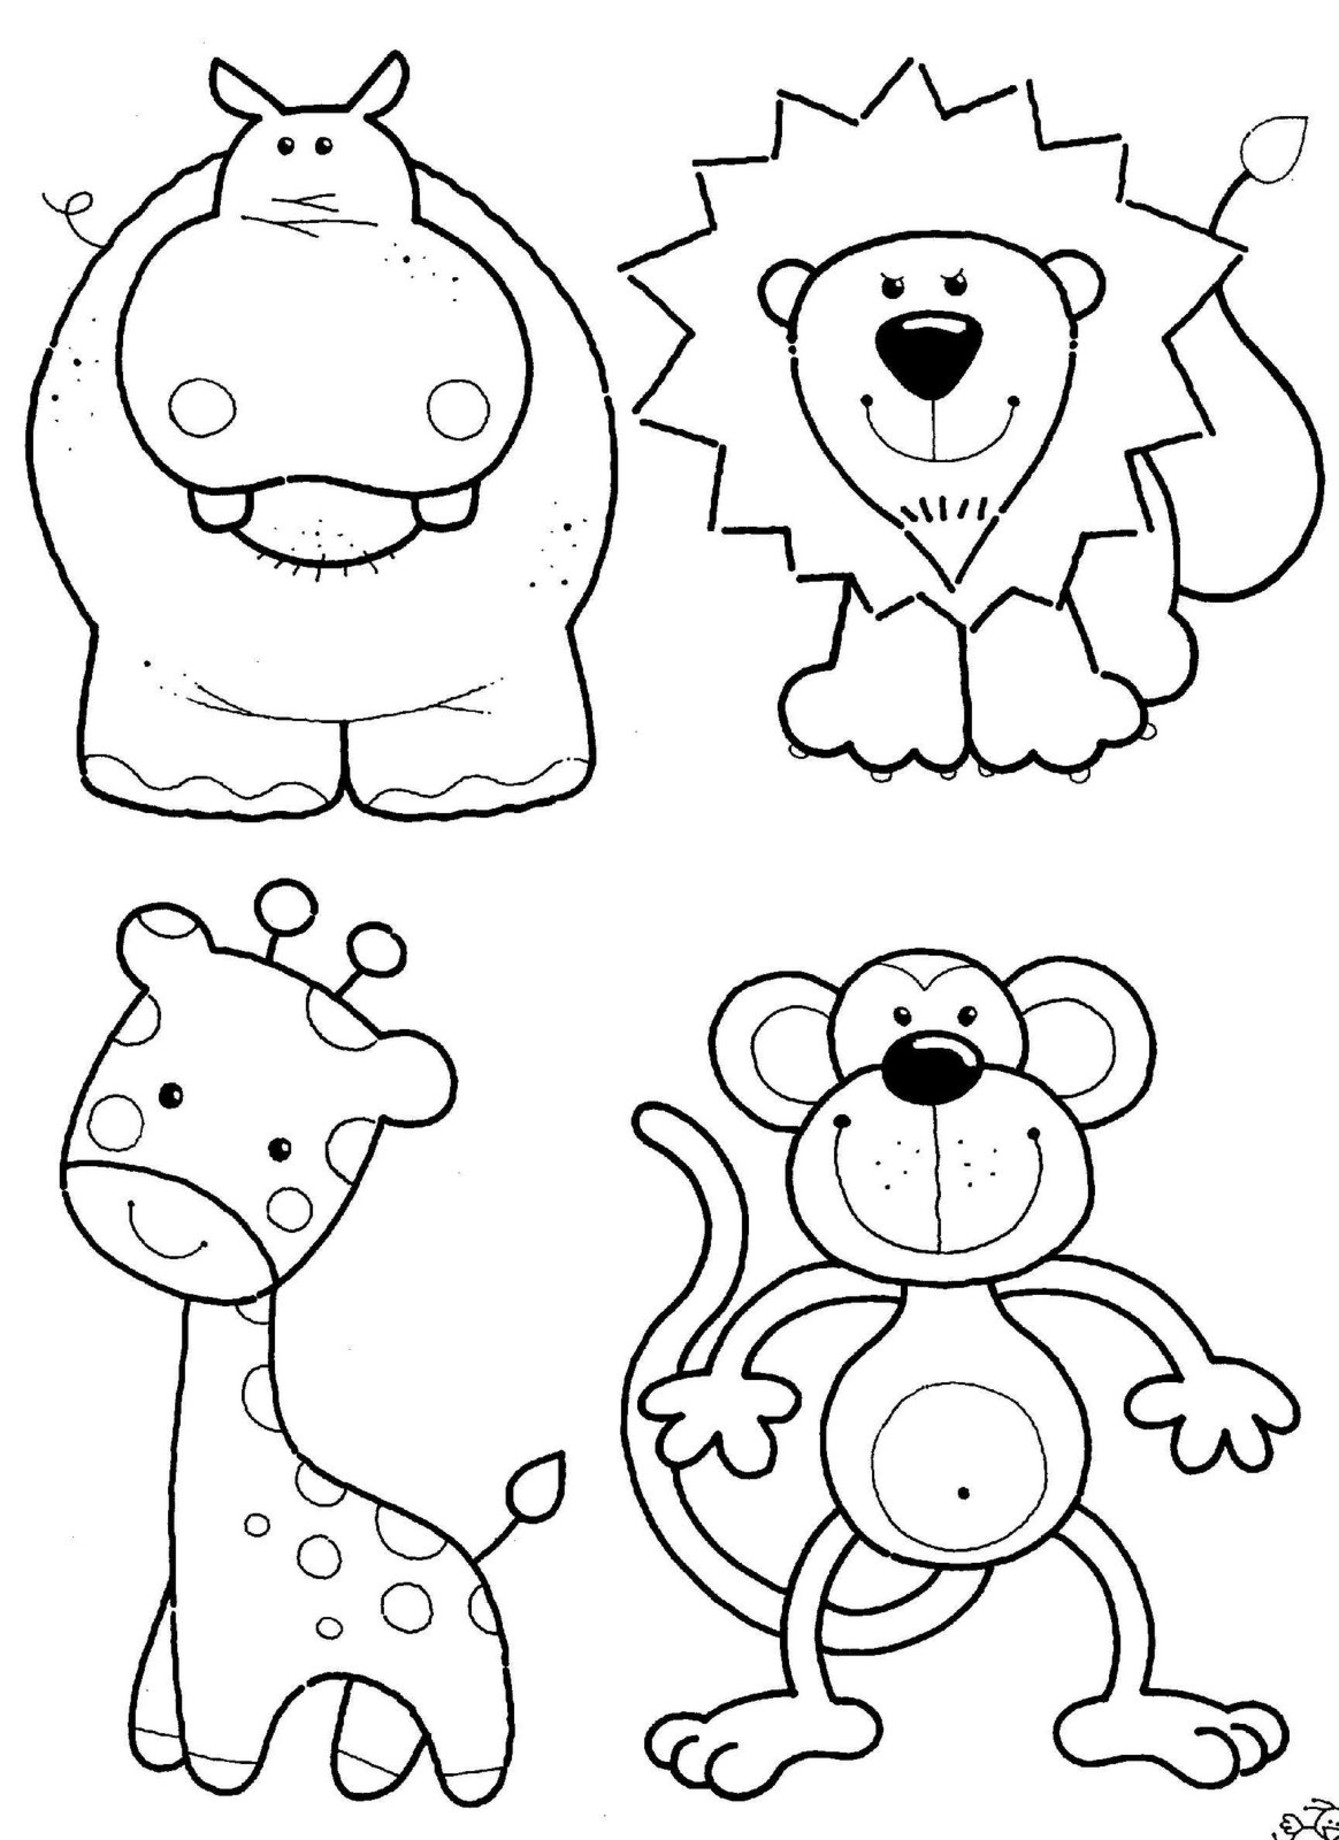 animal pictures coloring pages cute jungle animals coloring page pages animal pictures coloring